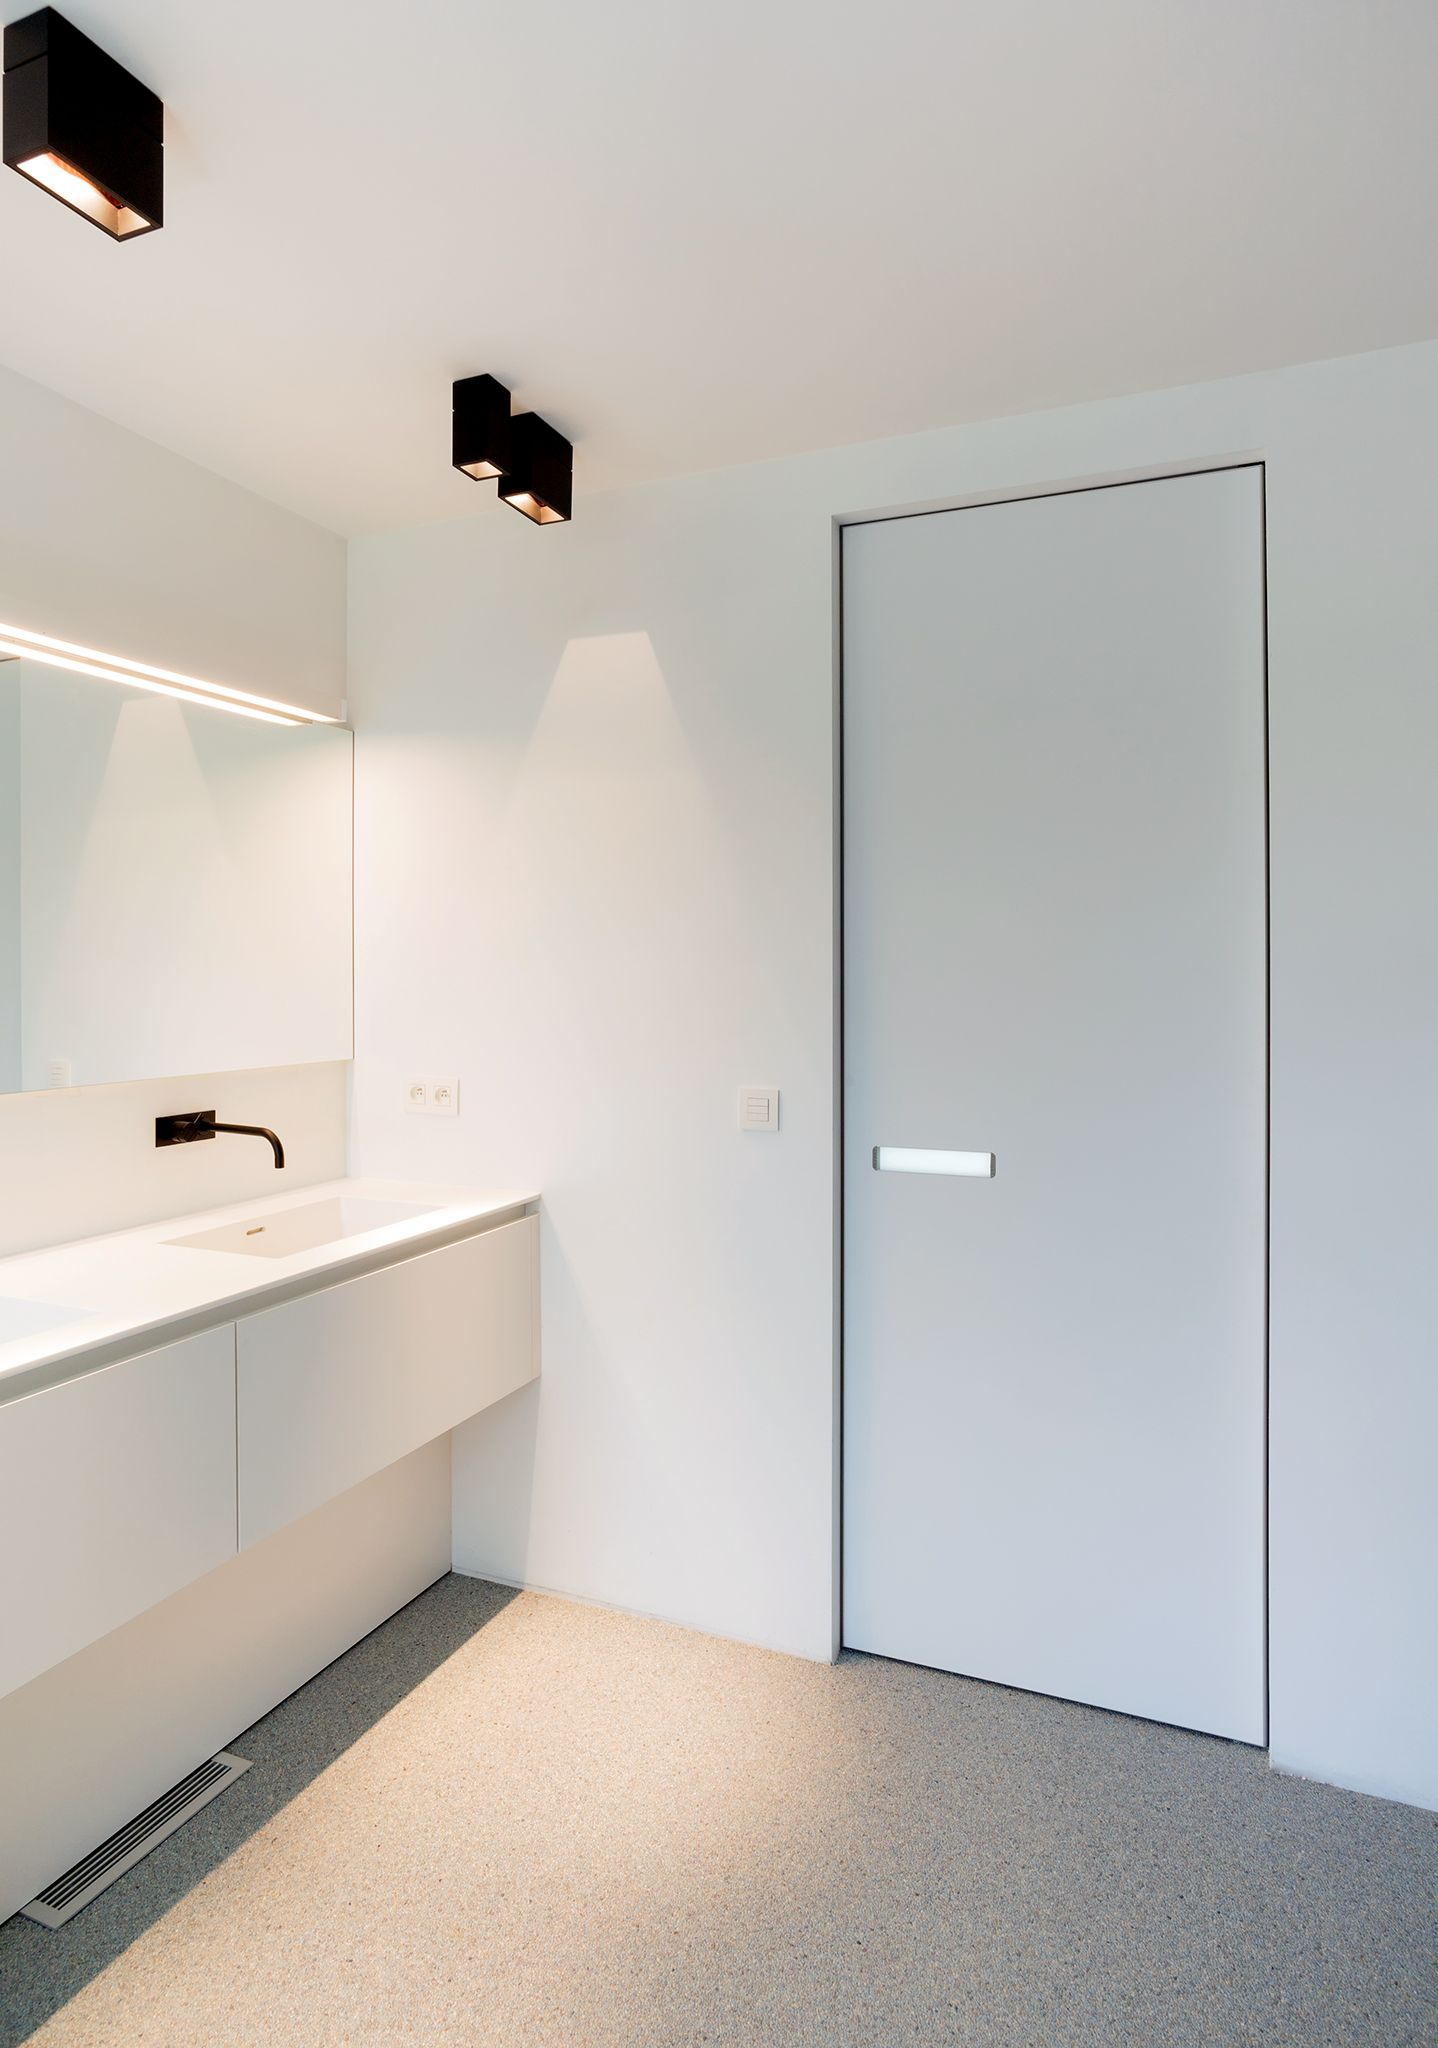 Modern Interior Doors Ideas 14: White Interior Door With Invisible Door Frame And A Built